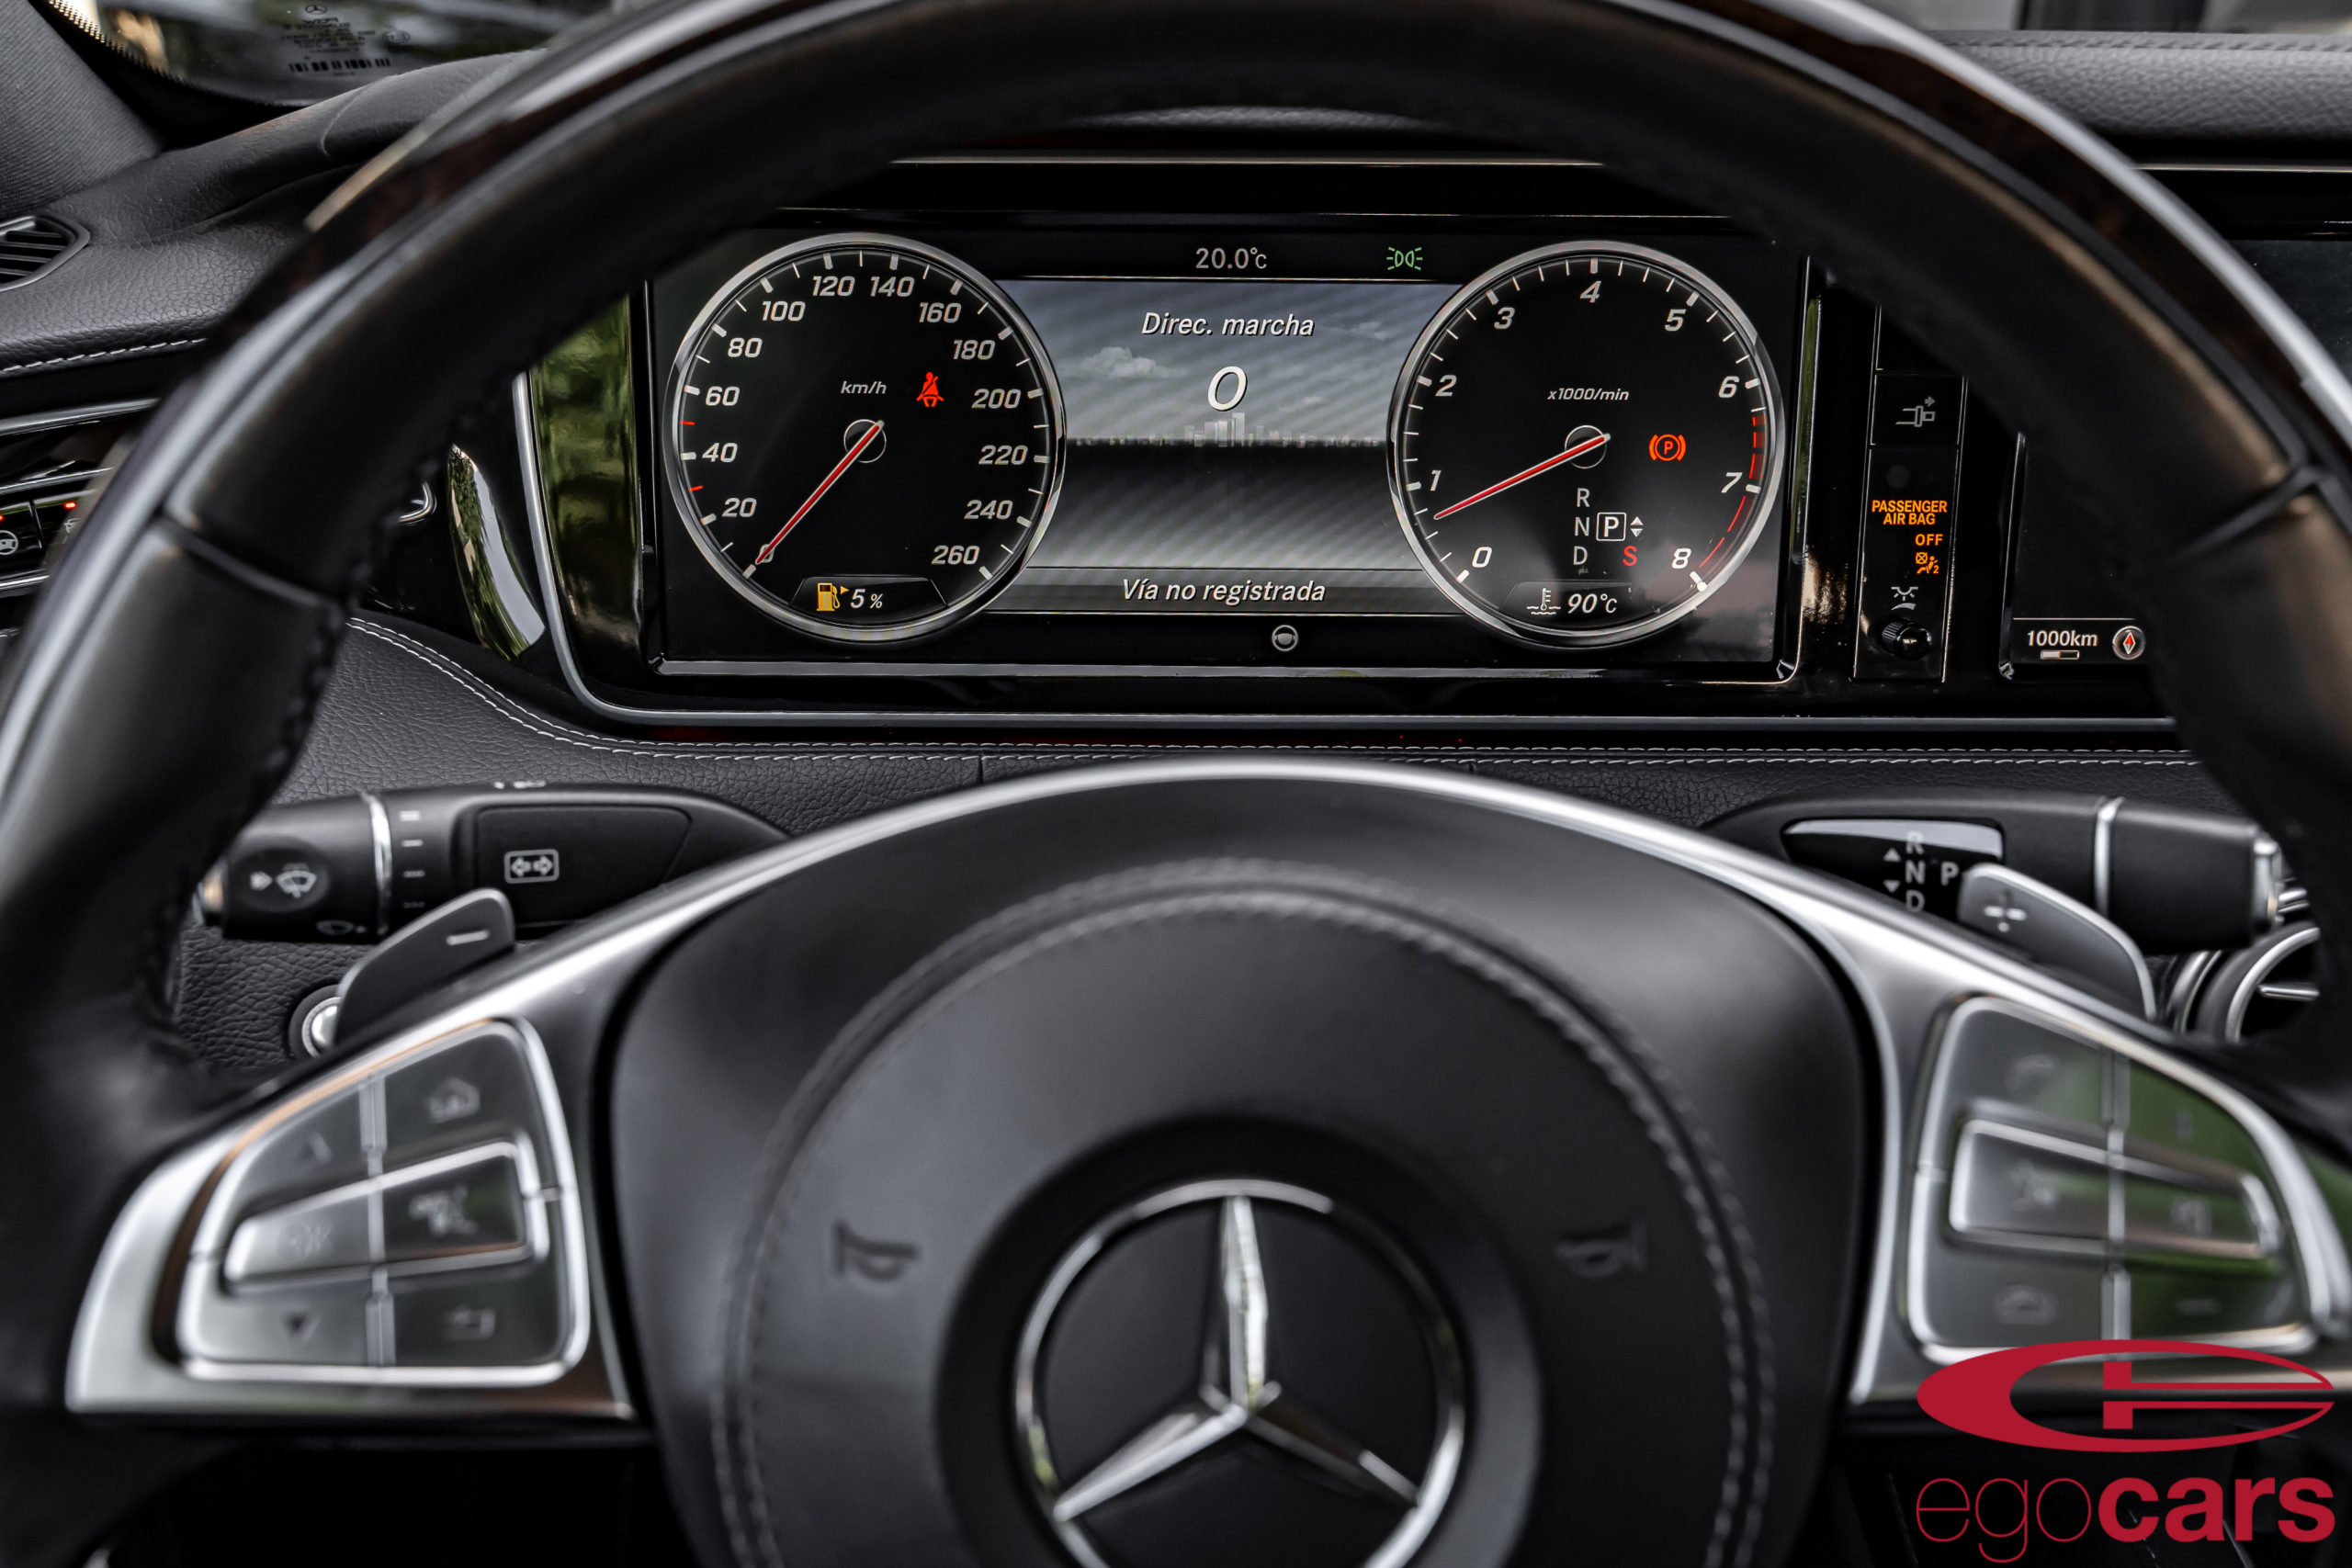 S500 COUPE 4MATIC NEGRO EGOCARS_23